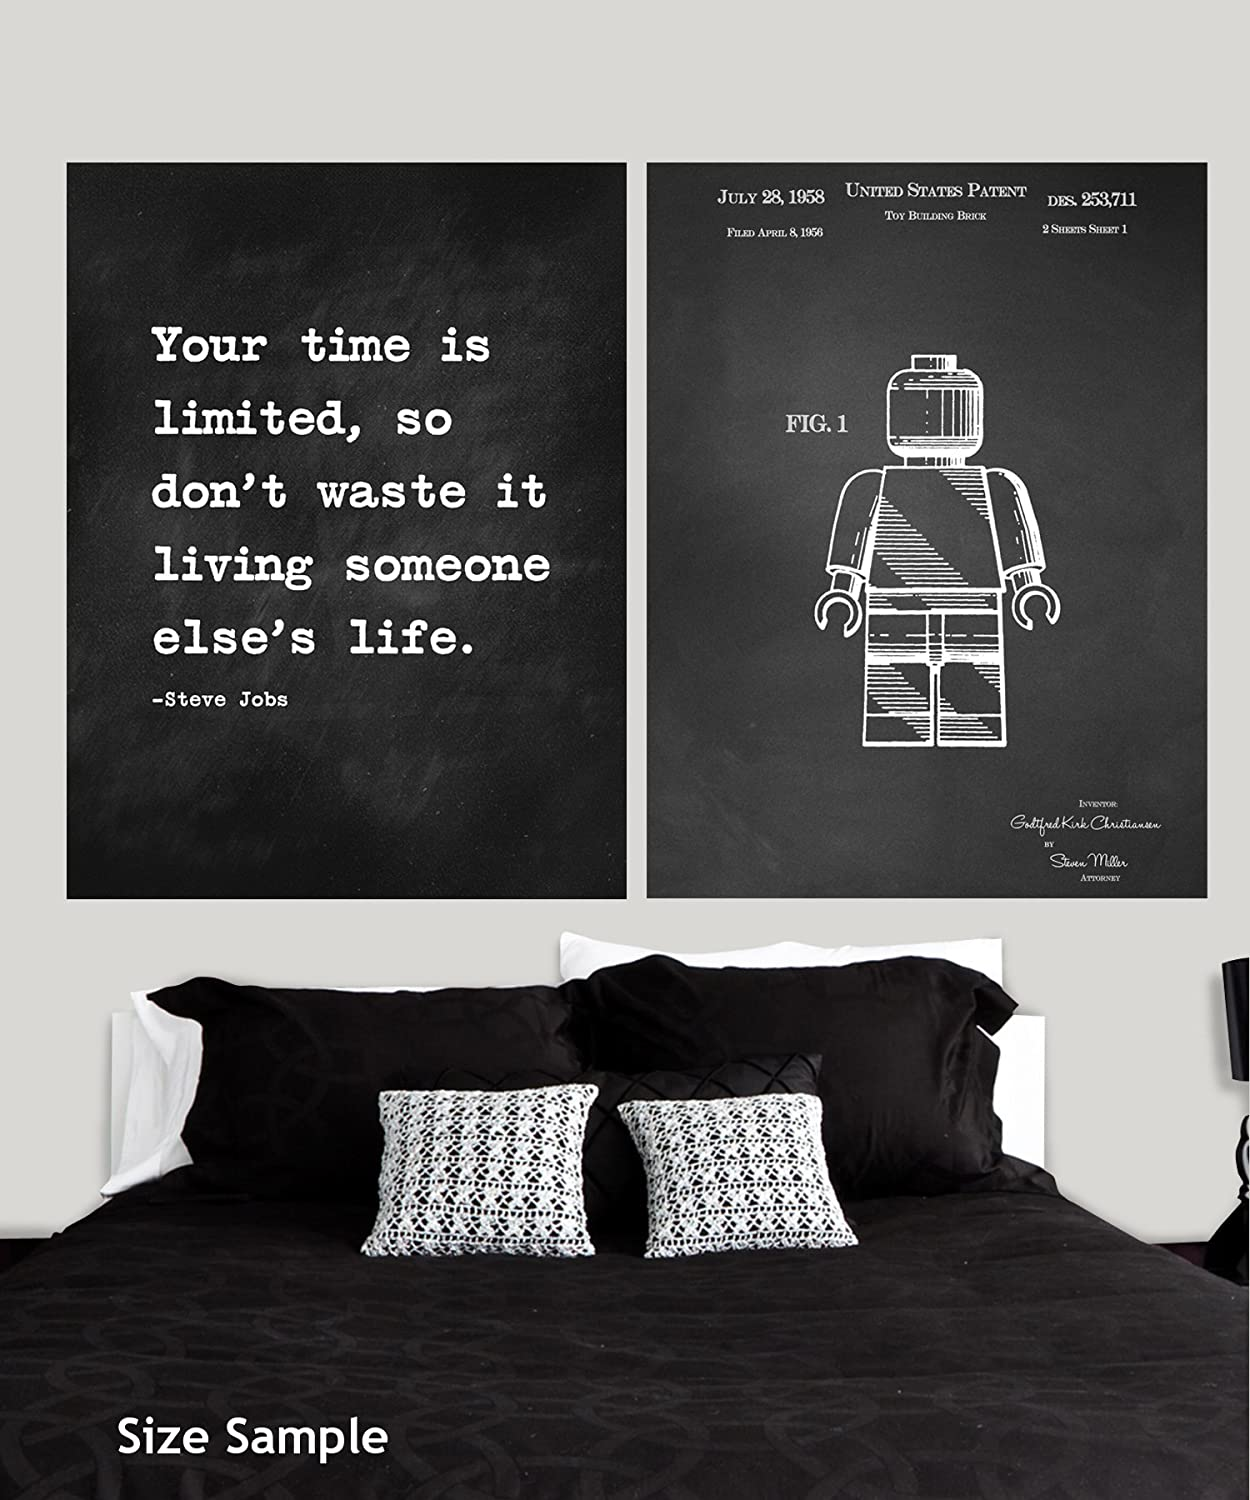 4 x 3 JP London Heavyweight Non Woven Prepasted Removable Wall Mural Motivational Inspiration Sayings Quote Art at 4 3 ft from George Bernard Shaw PMURLTNSP57